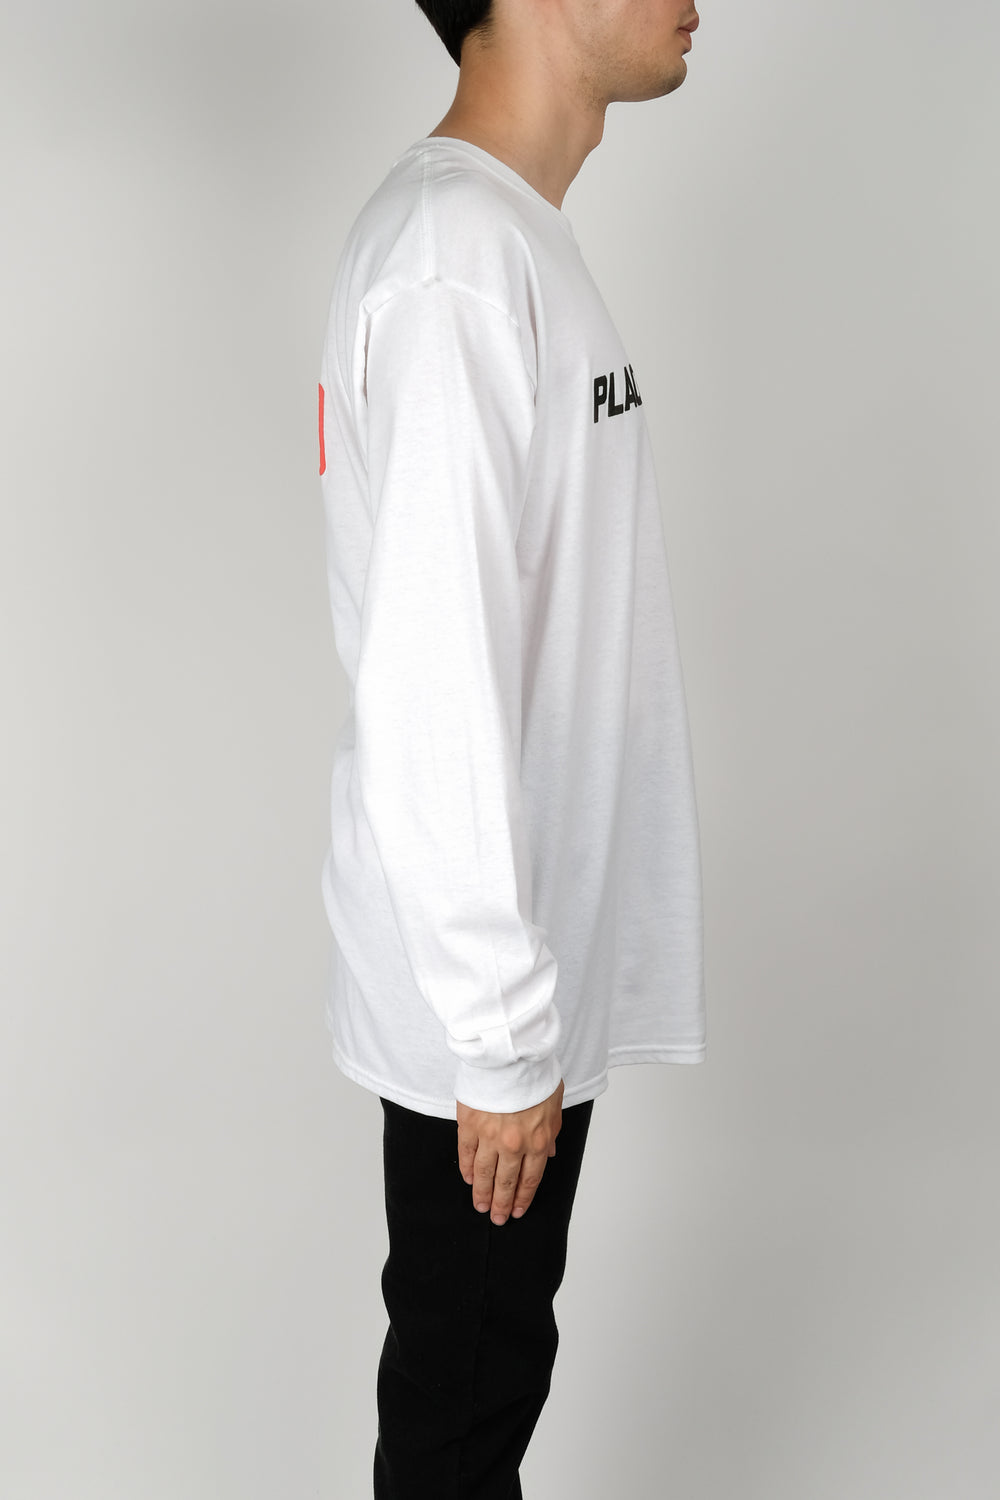 Places+Faces Canada L/S Tee In White